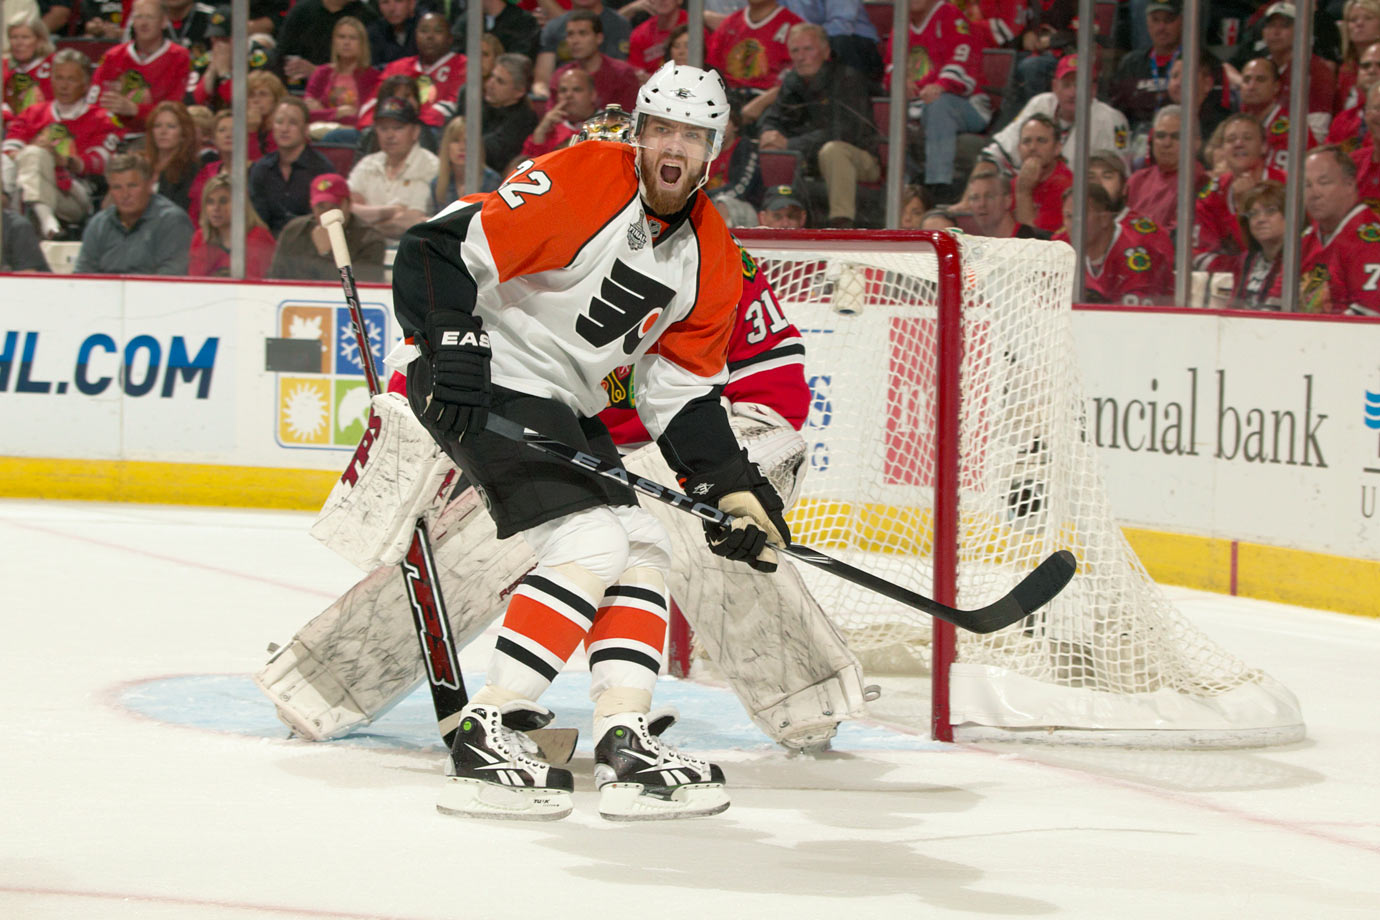 Though Leino skated in seven postseason games with the Red Wings in 2009, he was still considered a rookie the following year when he lit up the field as a member of the Flyers. The  26-year-old winger broke Don Maloney's record for playoff assists by a rookie with 14 and tied the rookie mark with 21 total points, a feat that was made even more amazing by the fact that he watched all but one game of Philly's first round series against New Jersey from the press box as a healthy scratch.